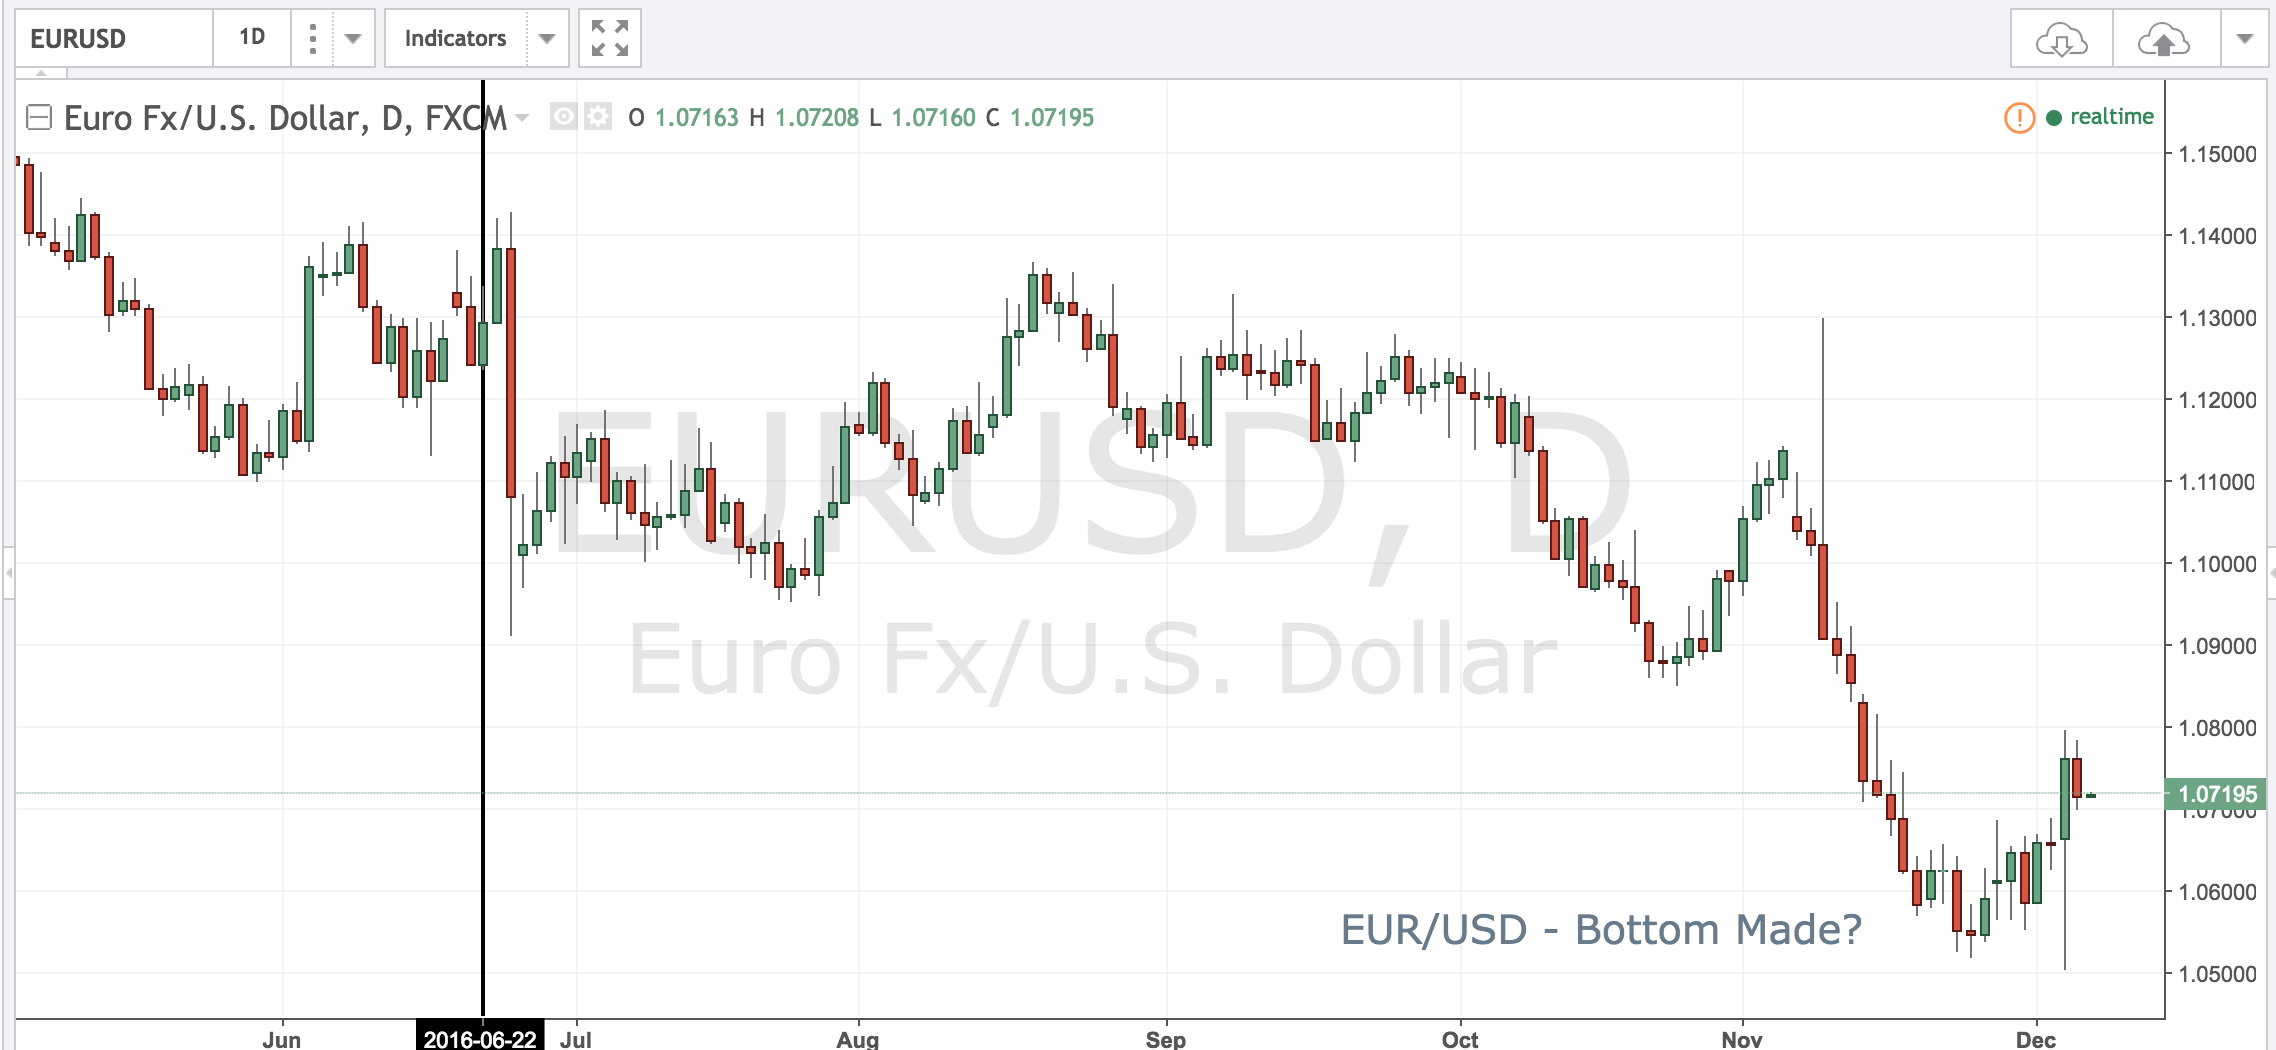 EURUSD – Bottom in Place?